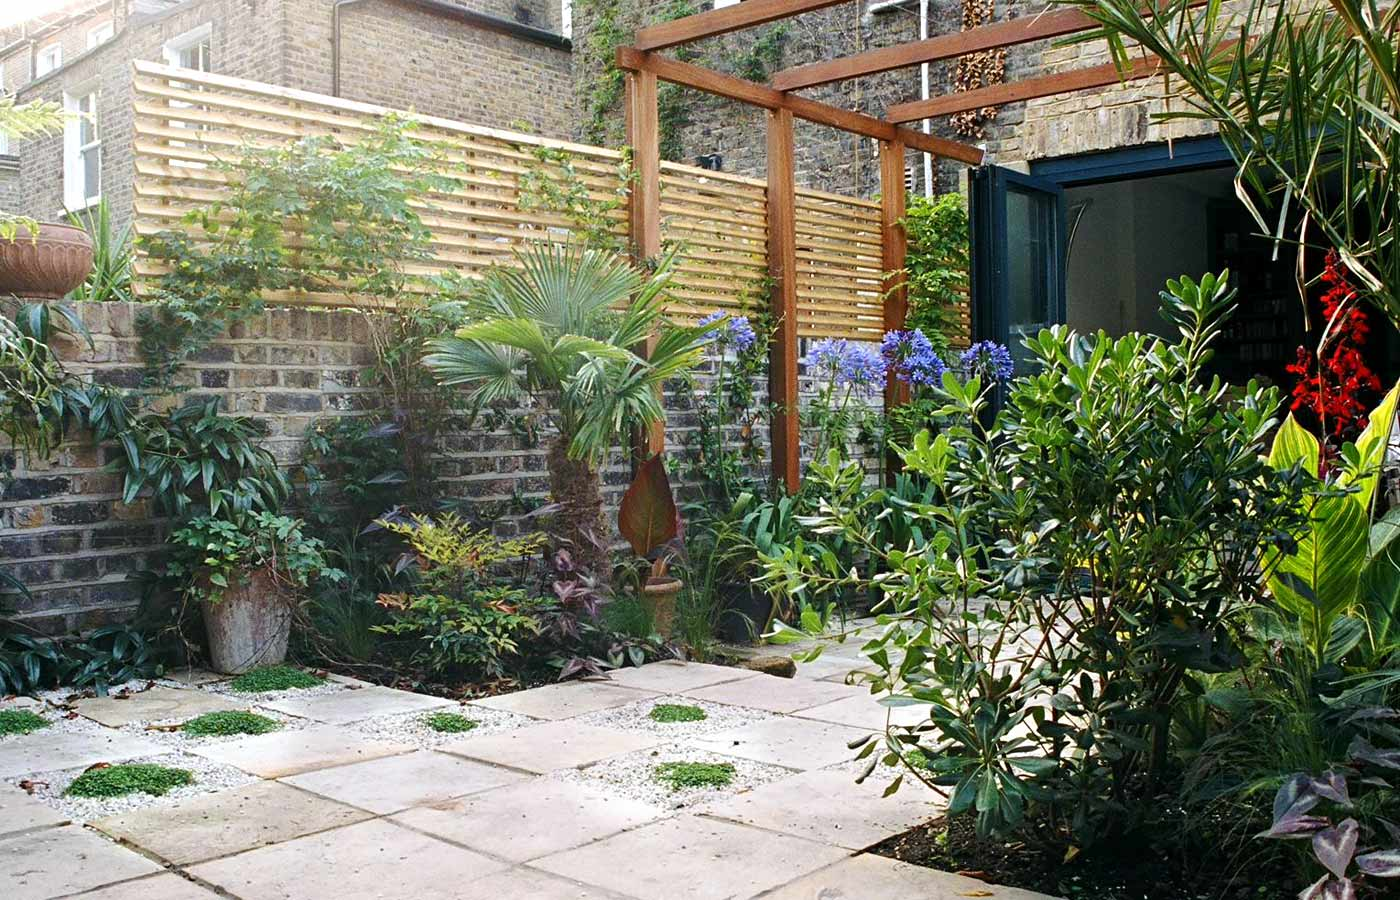 Courtyard garden design north london garden design for Garden designs images pictures